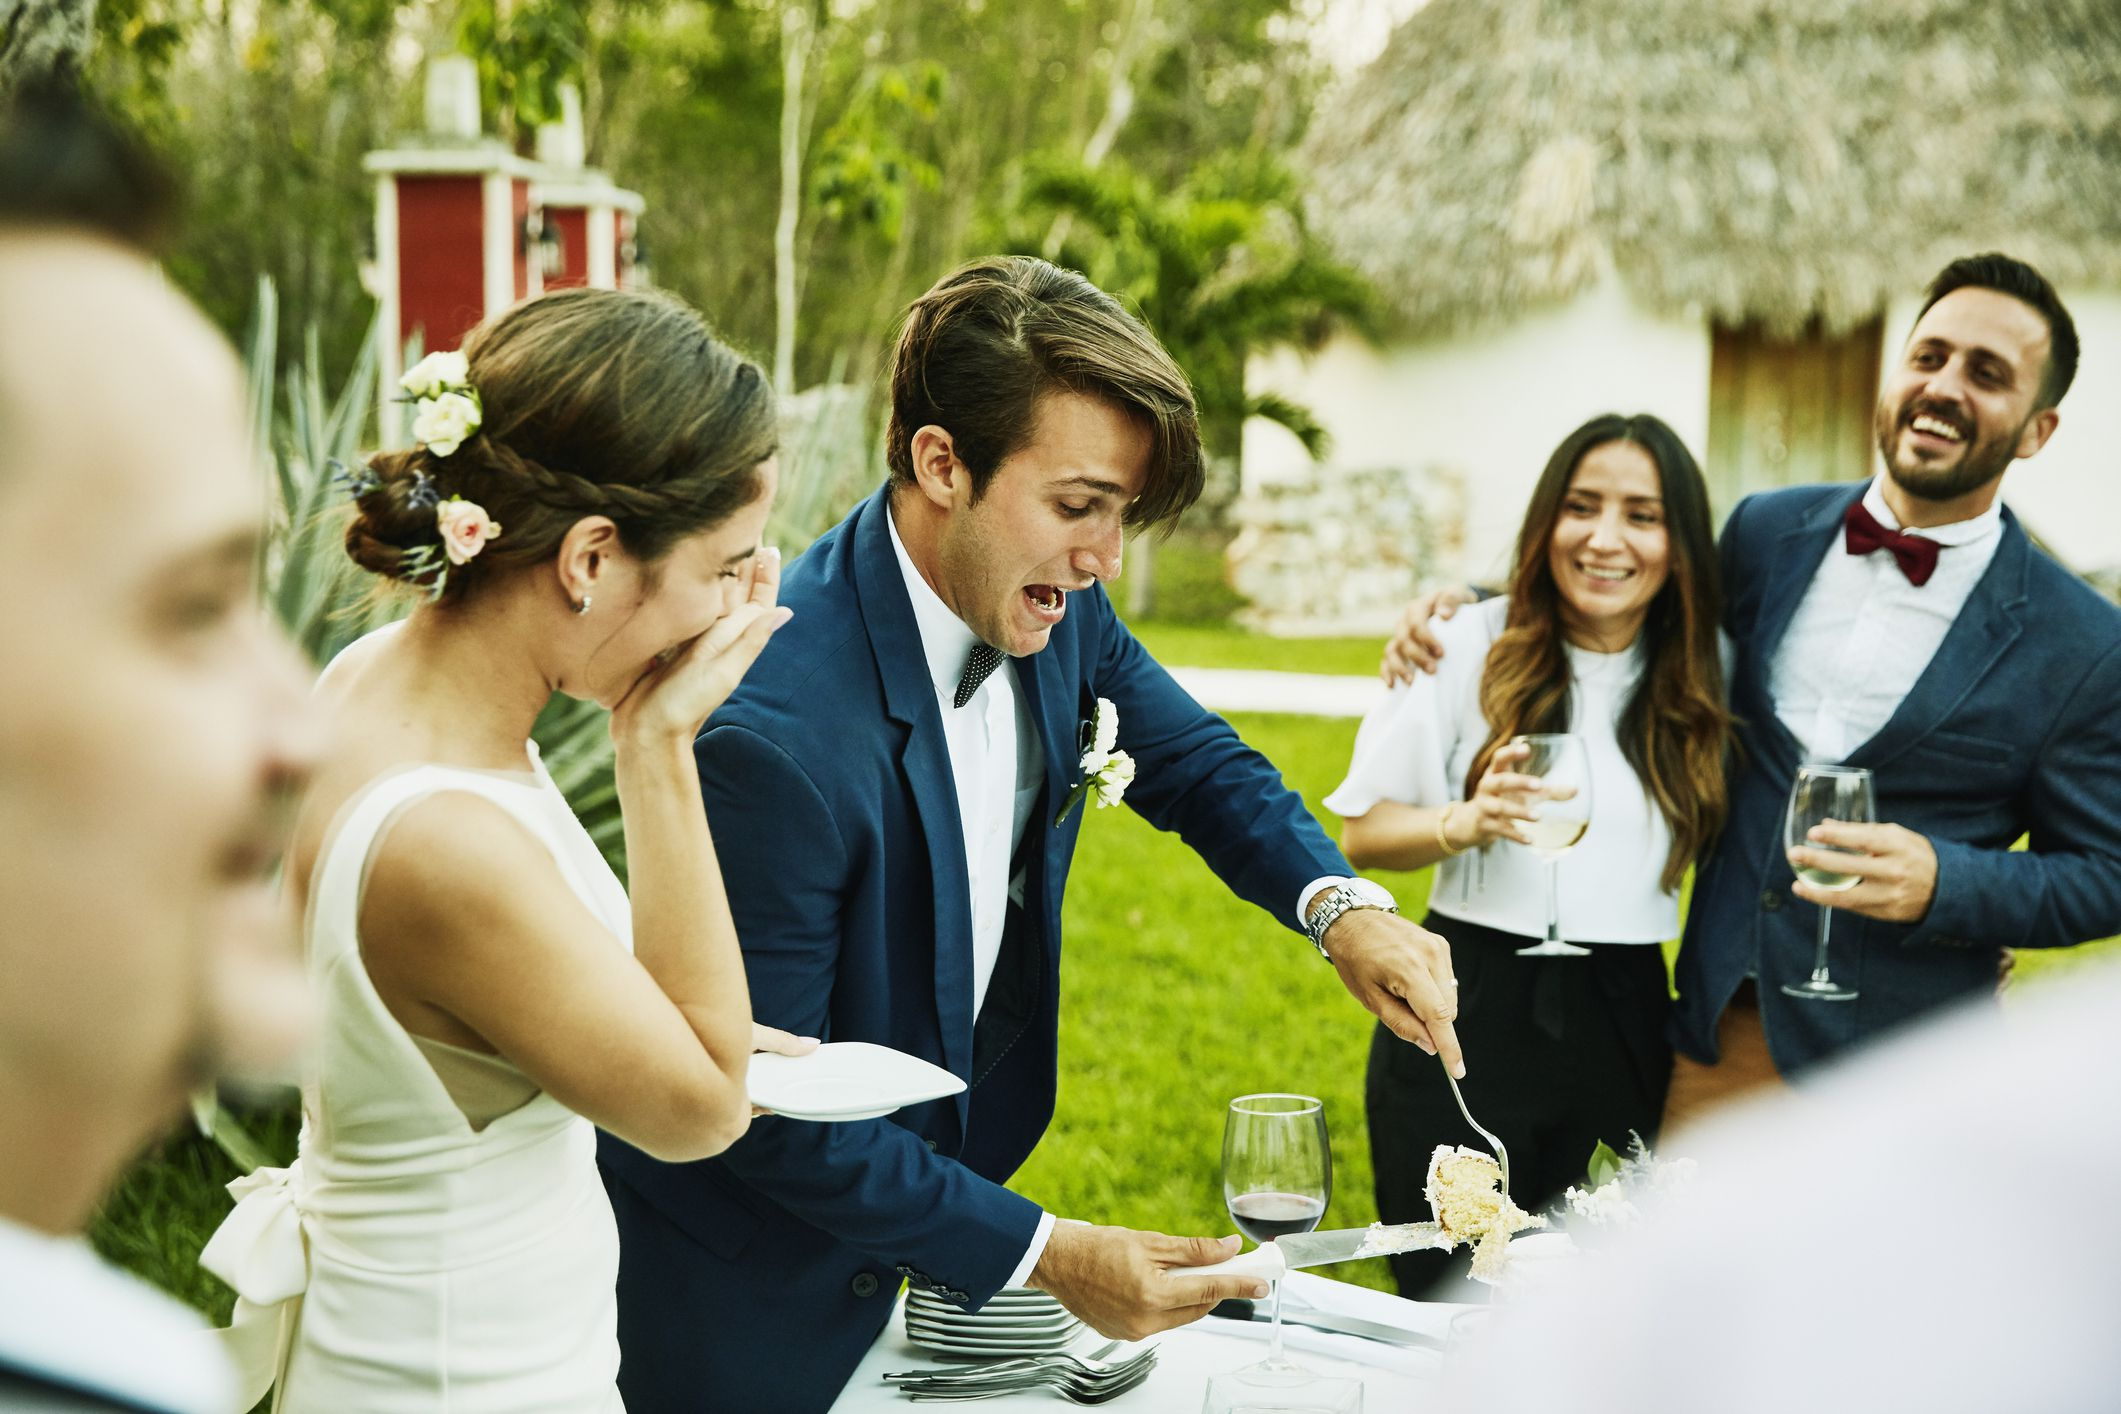 Traditional Elements Of The Wedding Reception